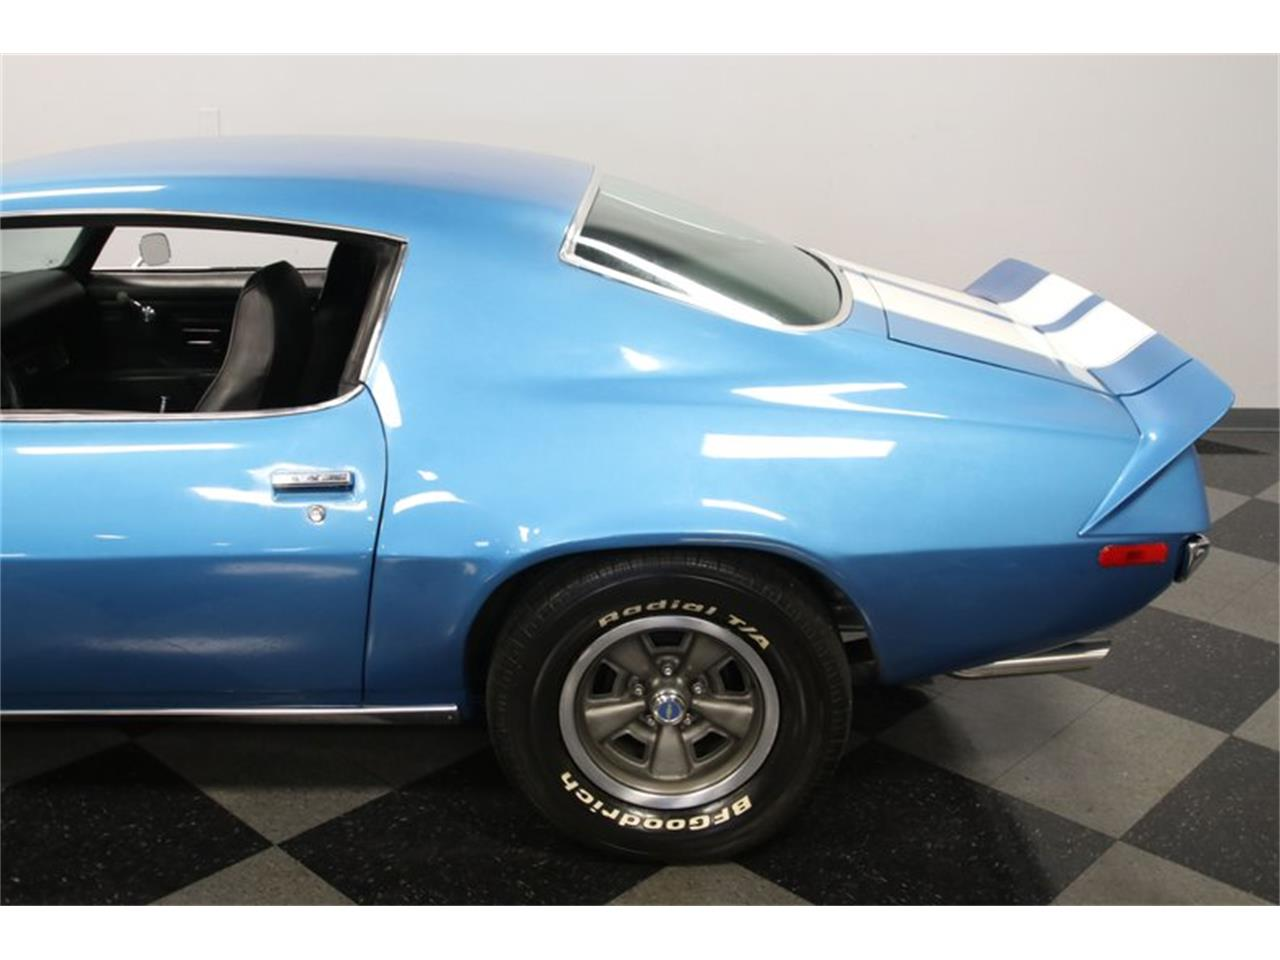 Large Picture of Classic 1970 Camaro located in North Carolina - $36,995.00 Offered by Streetside Classics - Charlotte - QRKC